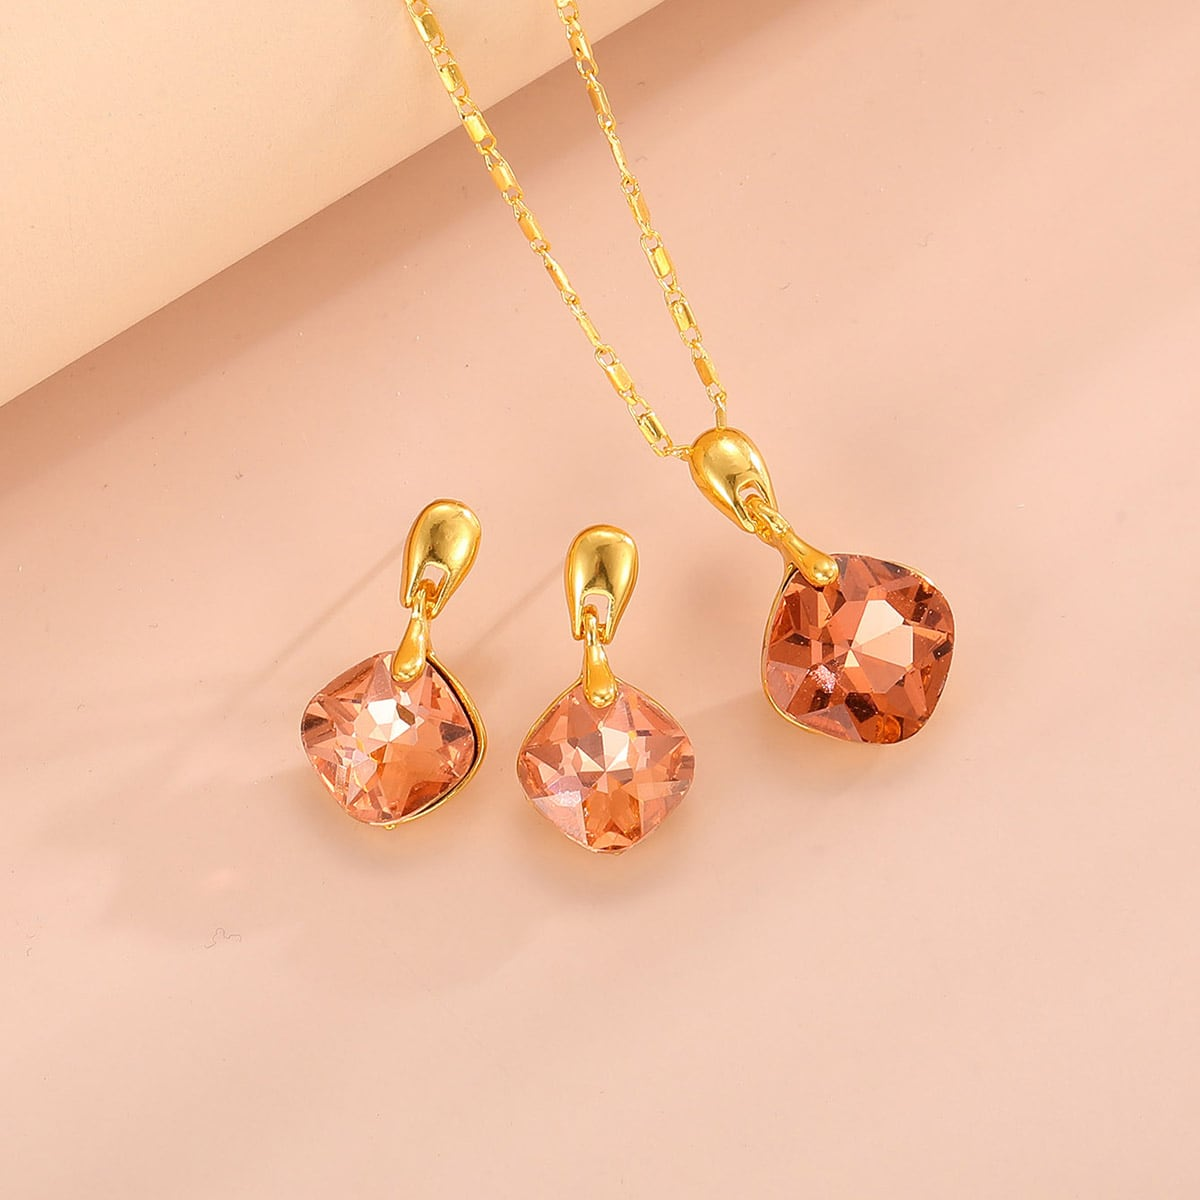 Rhinestone Charm Necklace & 1pair Drop Earrings, SHEIN  - buy with discount